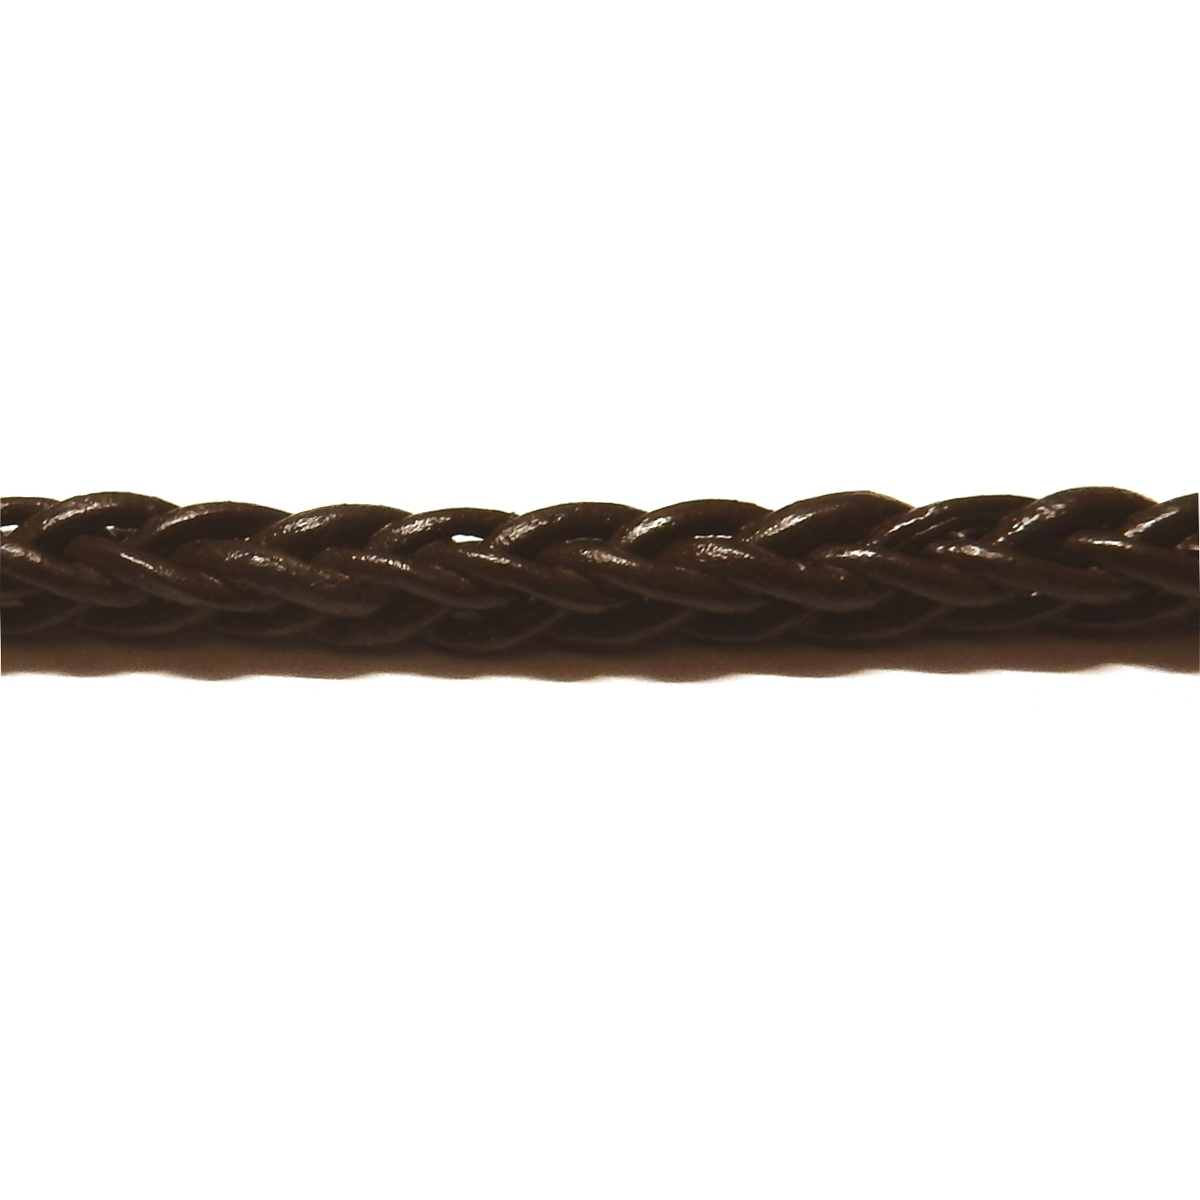 Square Braided Leather Cord 5mm - Dark Brown